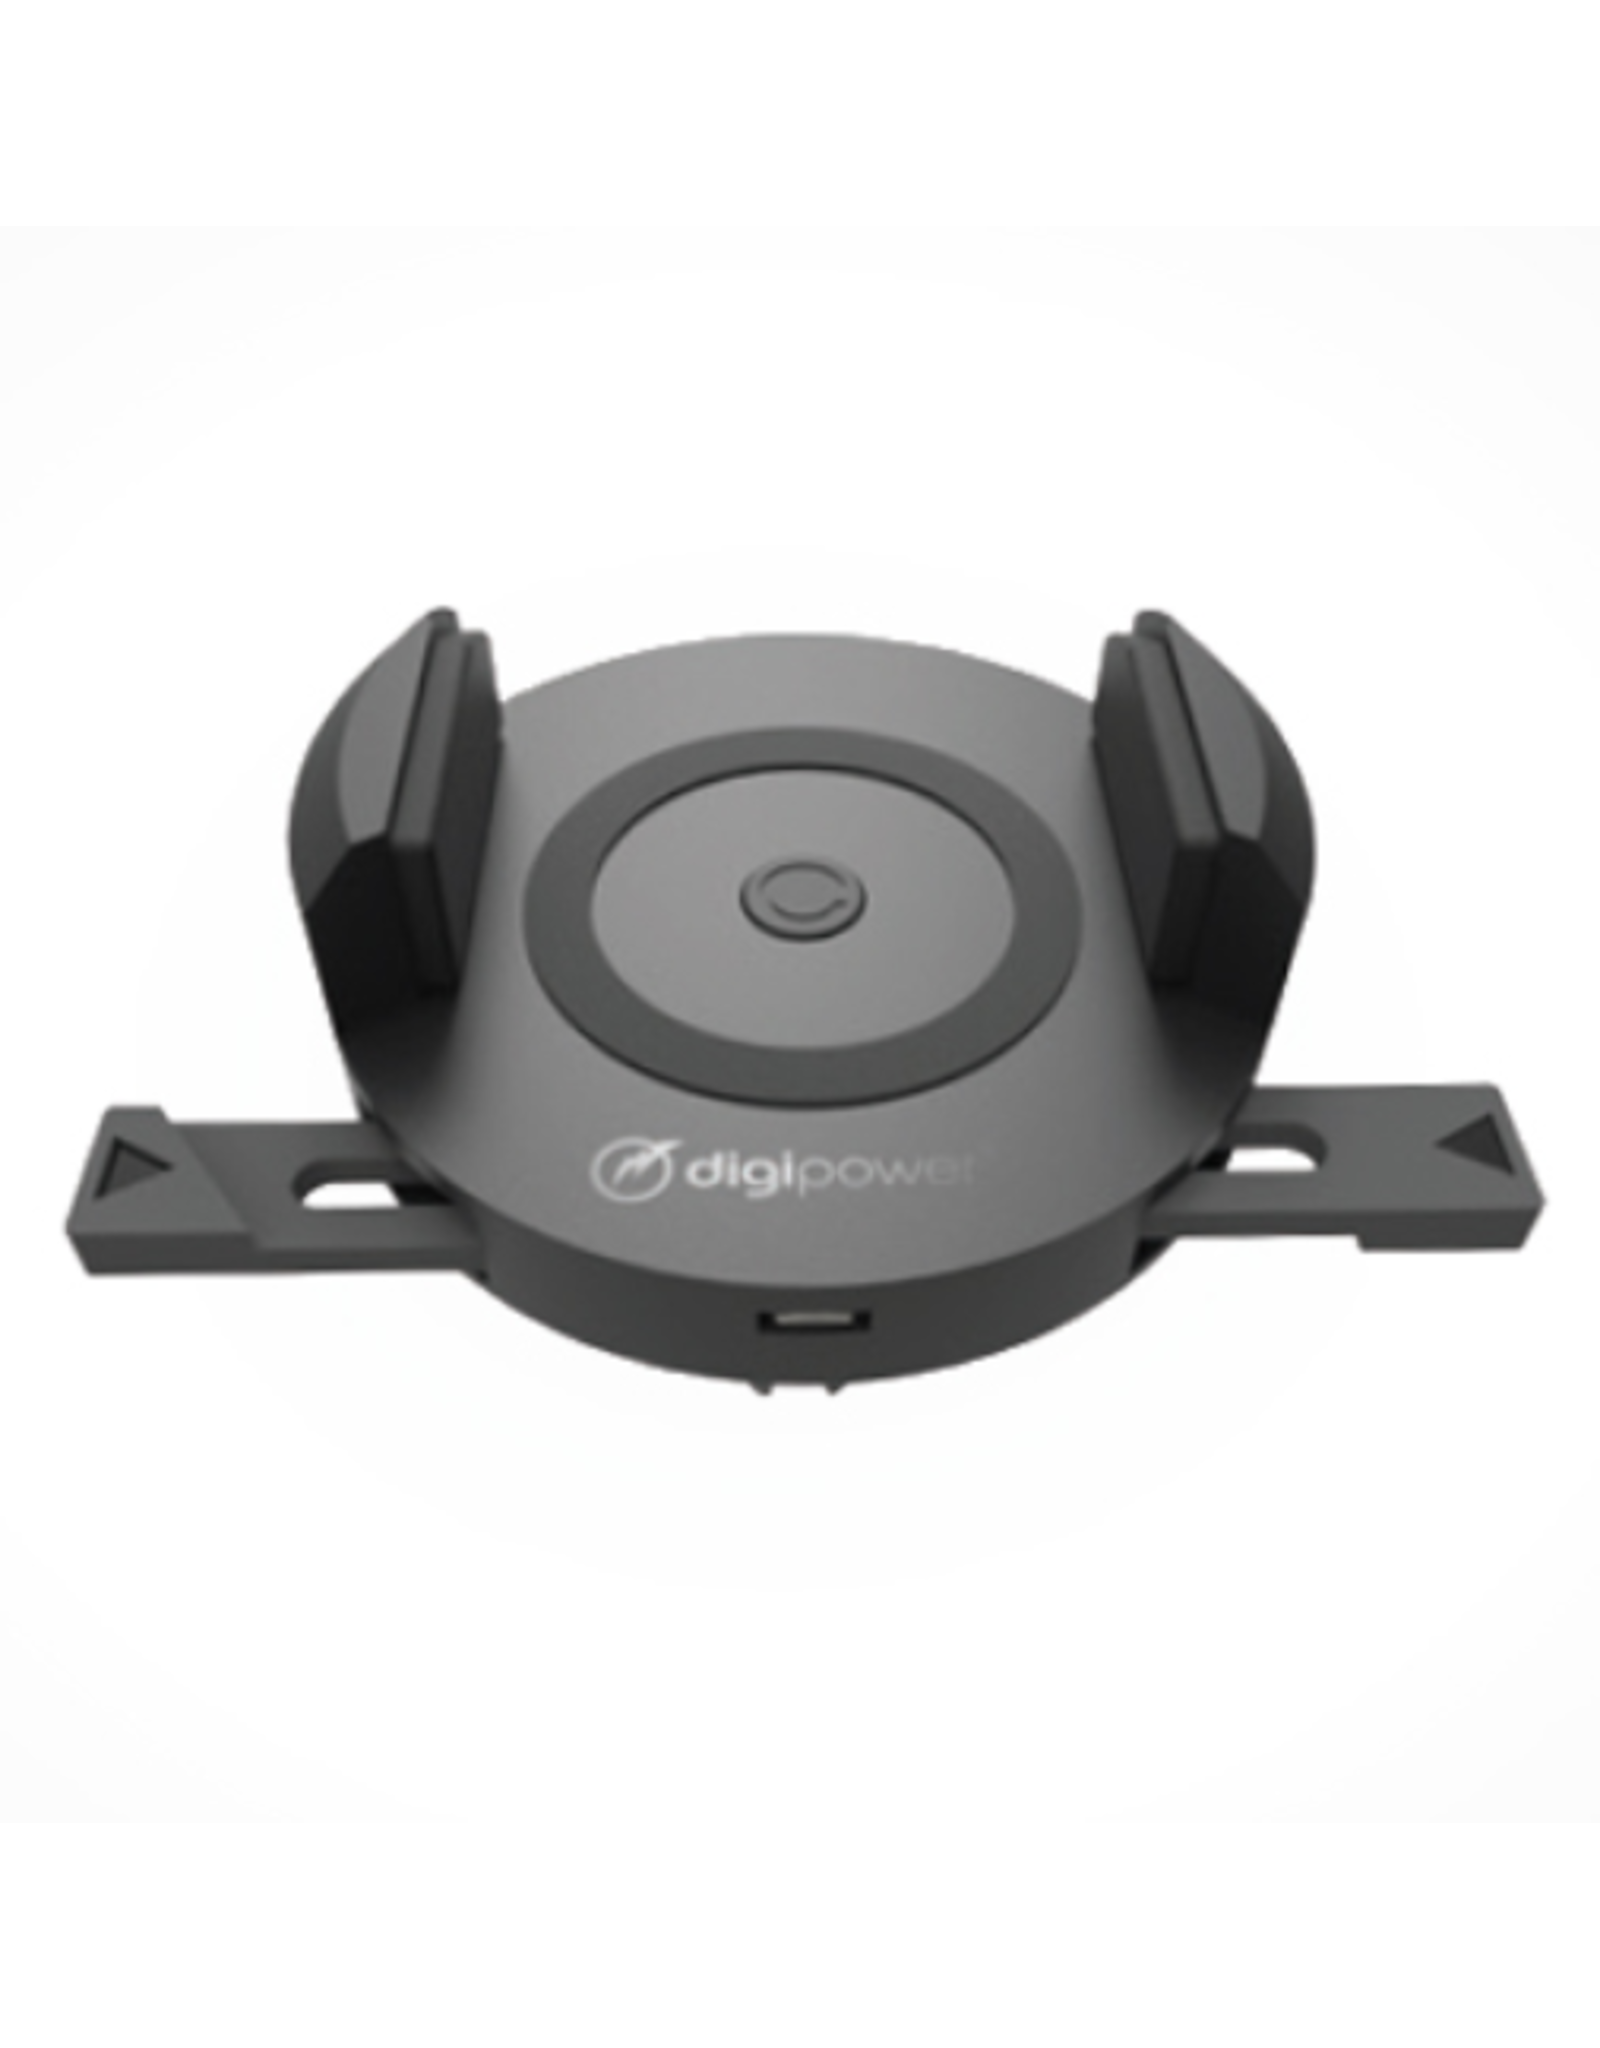 Digipower Digipower Qi Charger Car Vent Mount 10W w/Micro USB SKU:47416